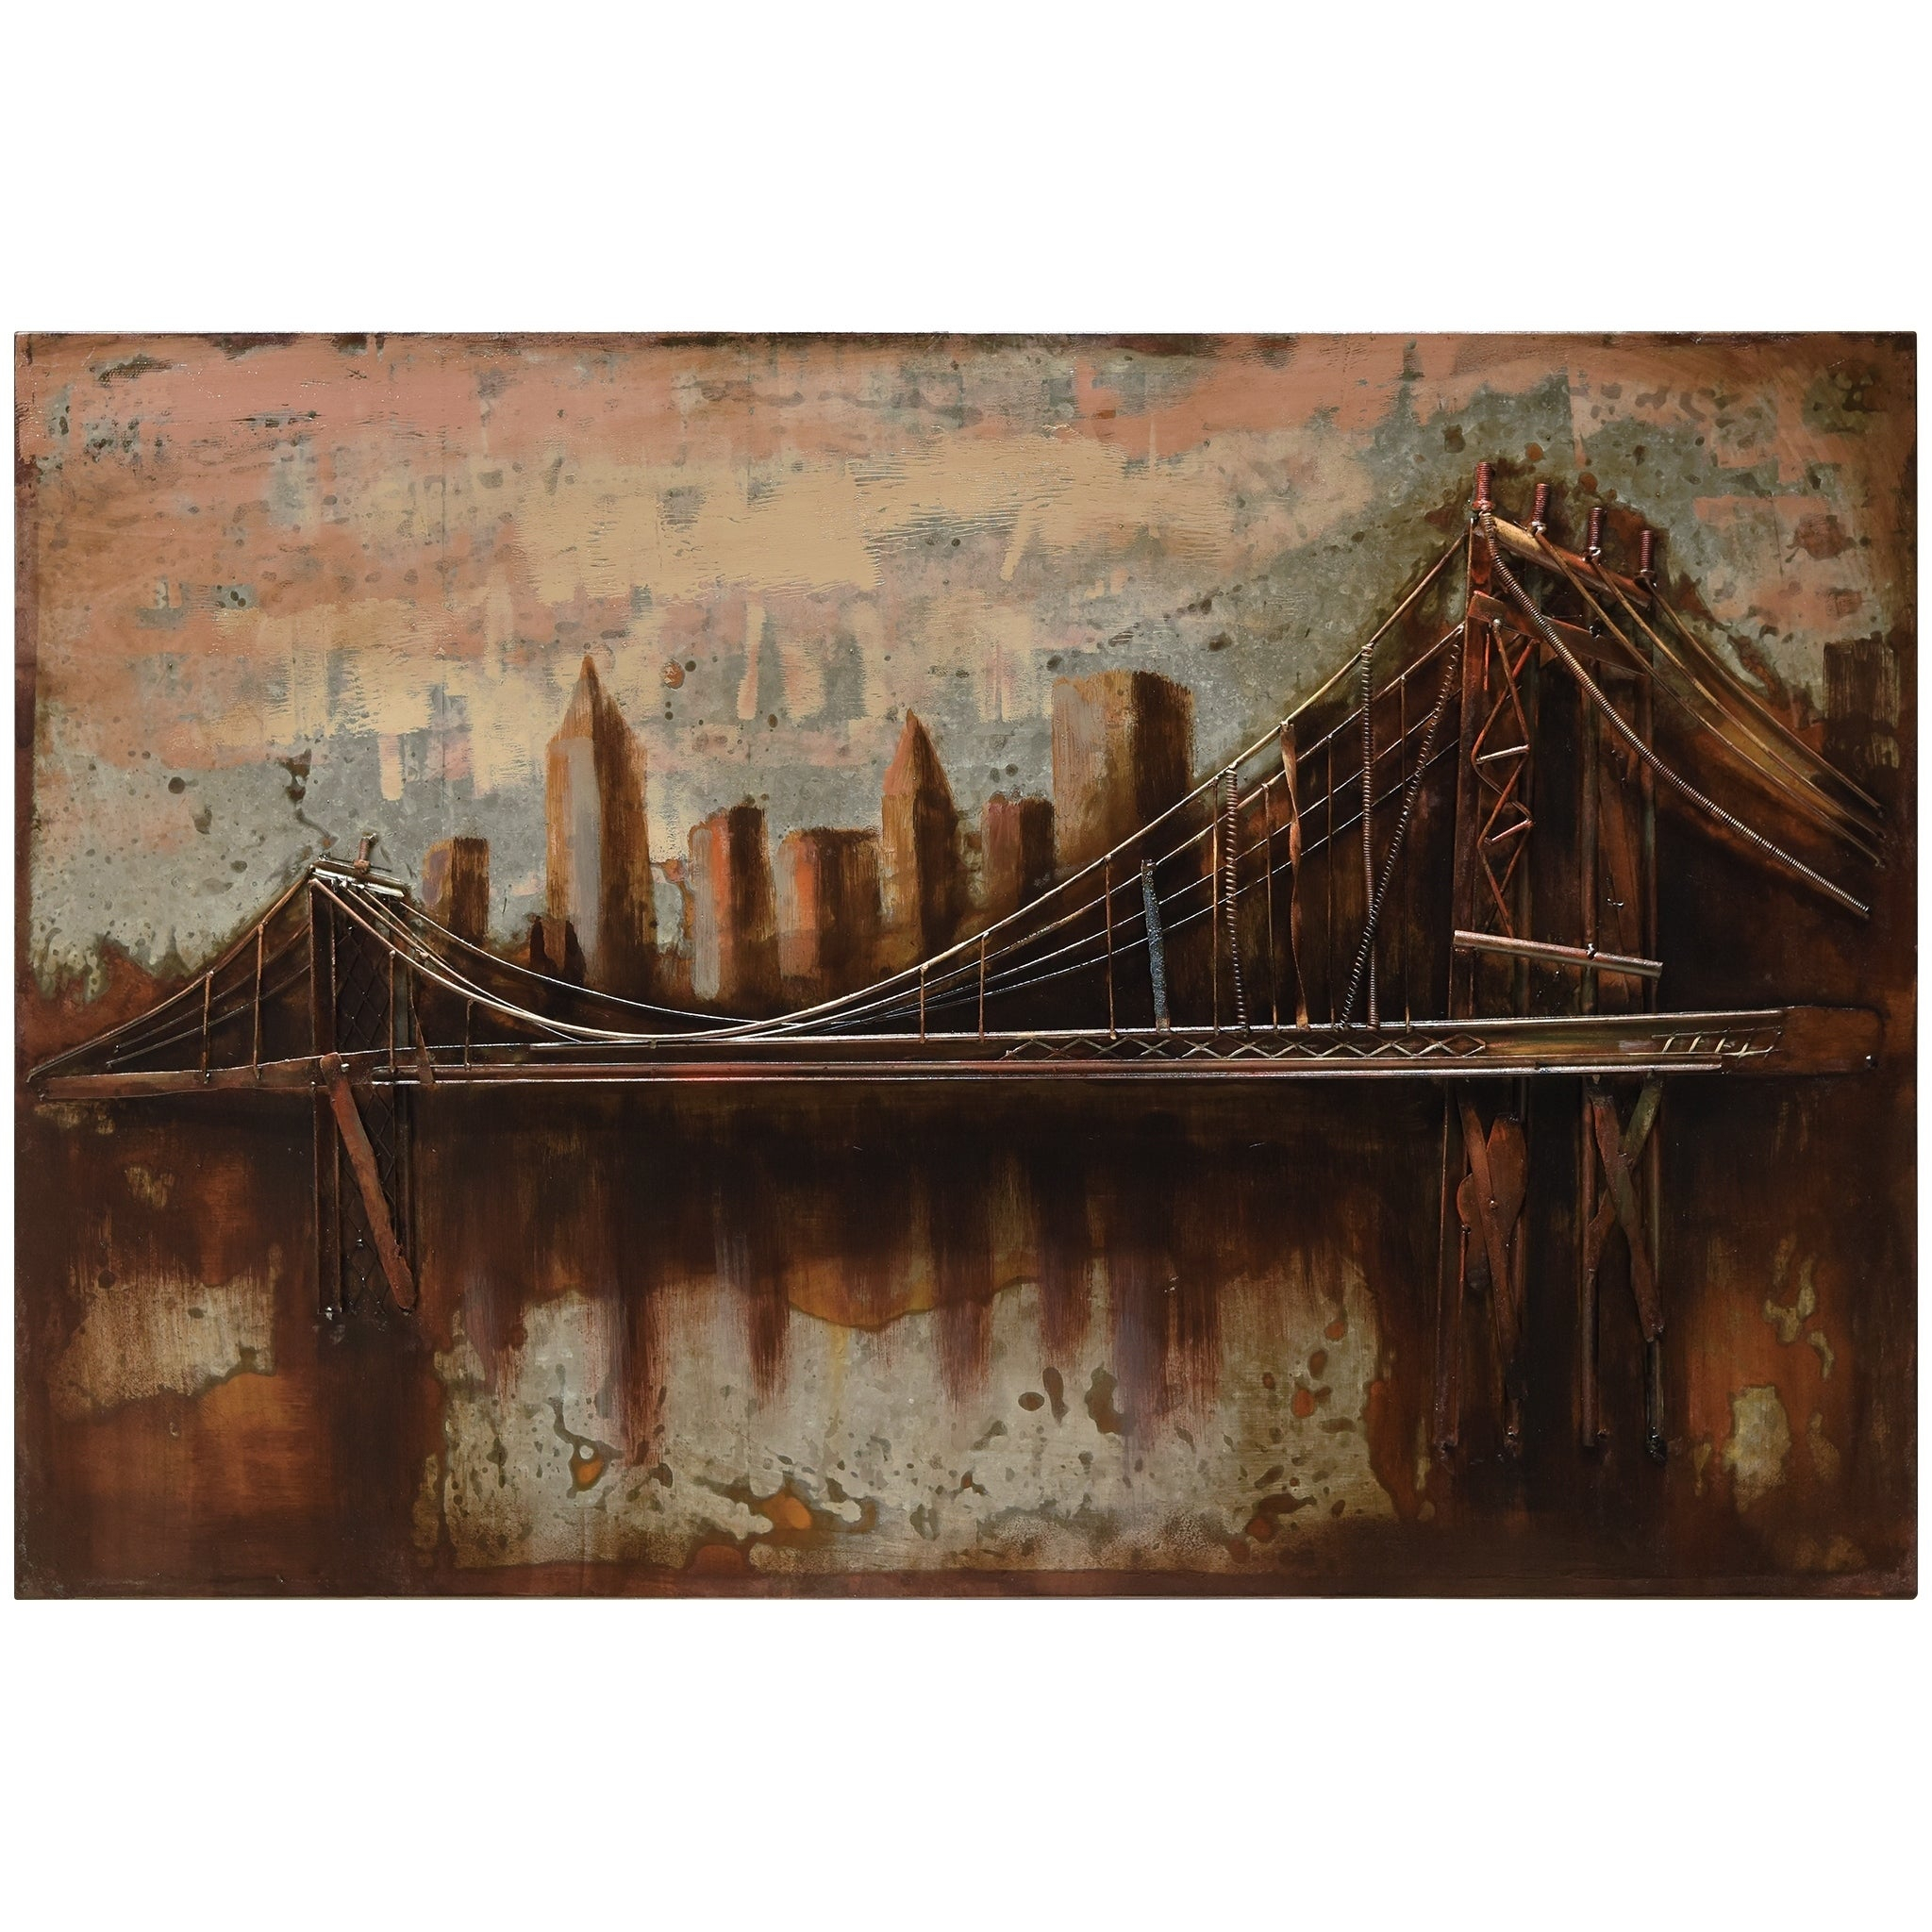 """Shop """"bridgescape"""" Mixed Media Iron Hand Painted Dimensional Wall Intended For 2020 """"bridge To The City"""" Mixed Media Iron Hand Painted Dimensional Wall Decor (Gallery 3 of 20)"""